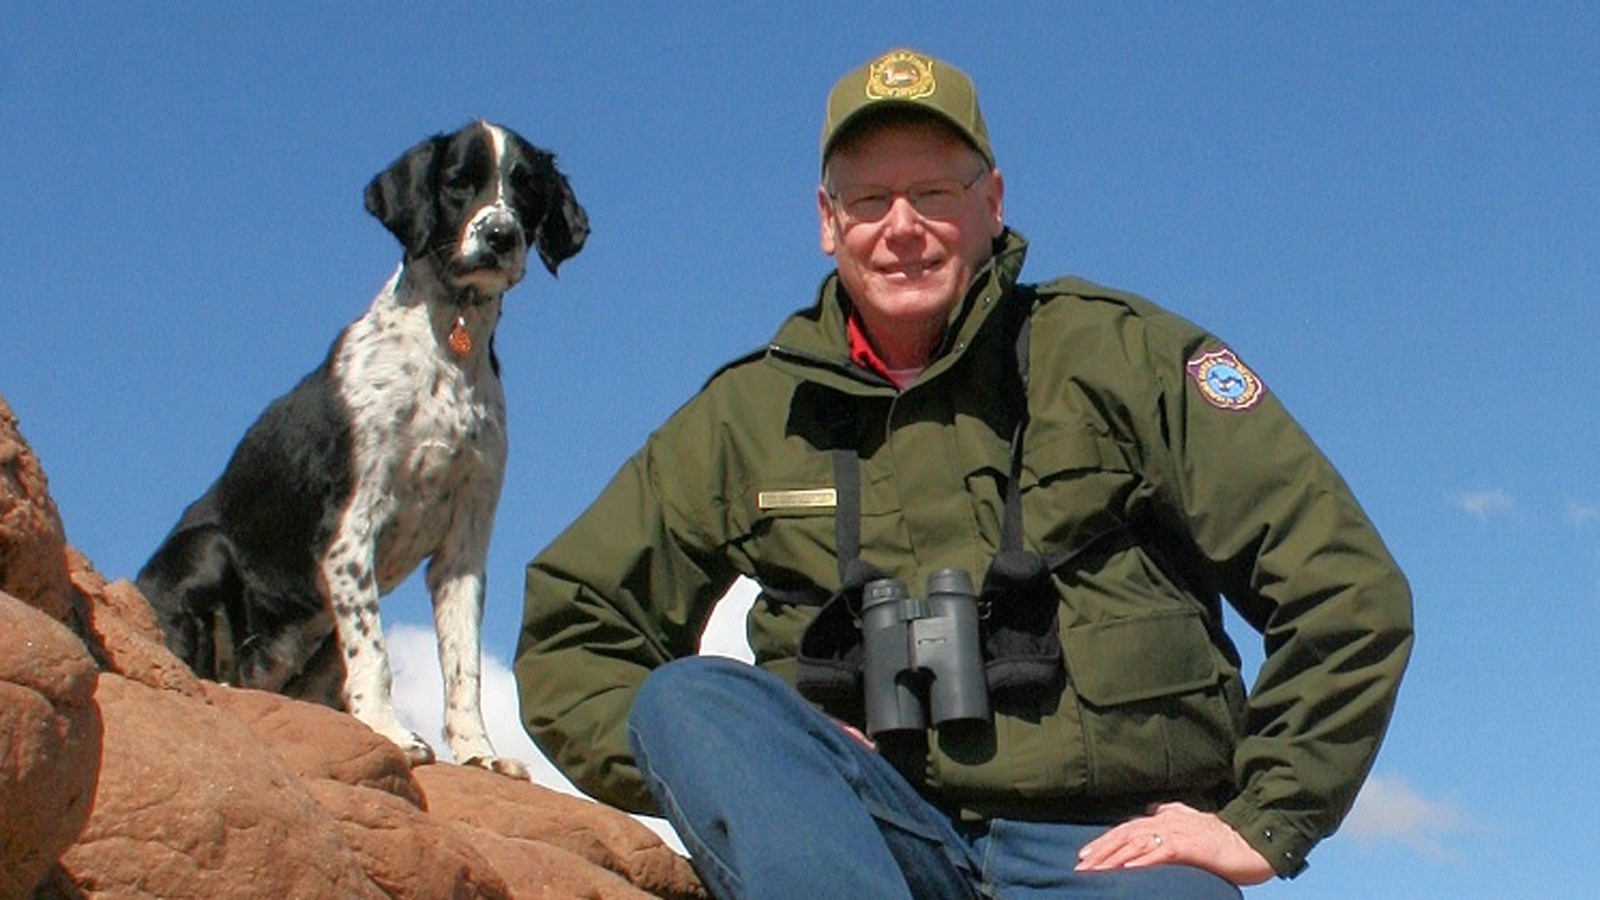 SNR Alumni: Tom Christiansen - Wildlife management course turns out to more than your run of the mill elective